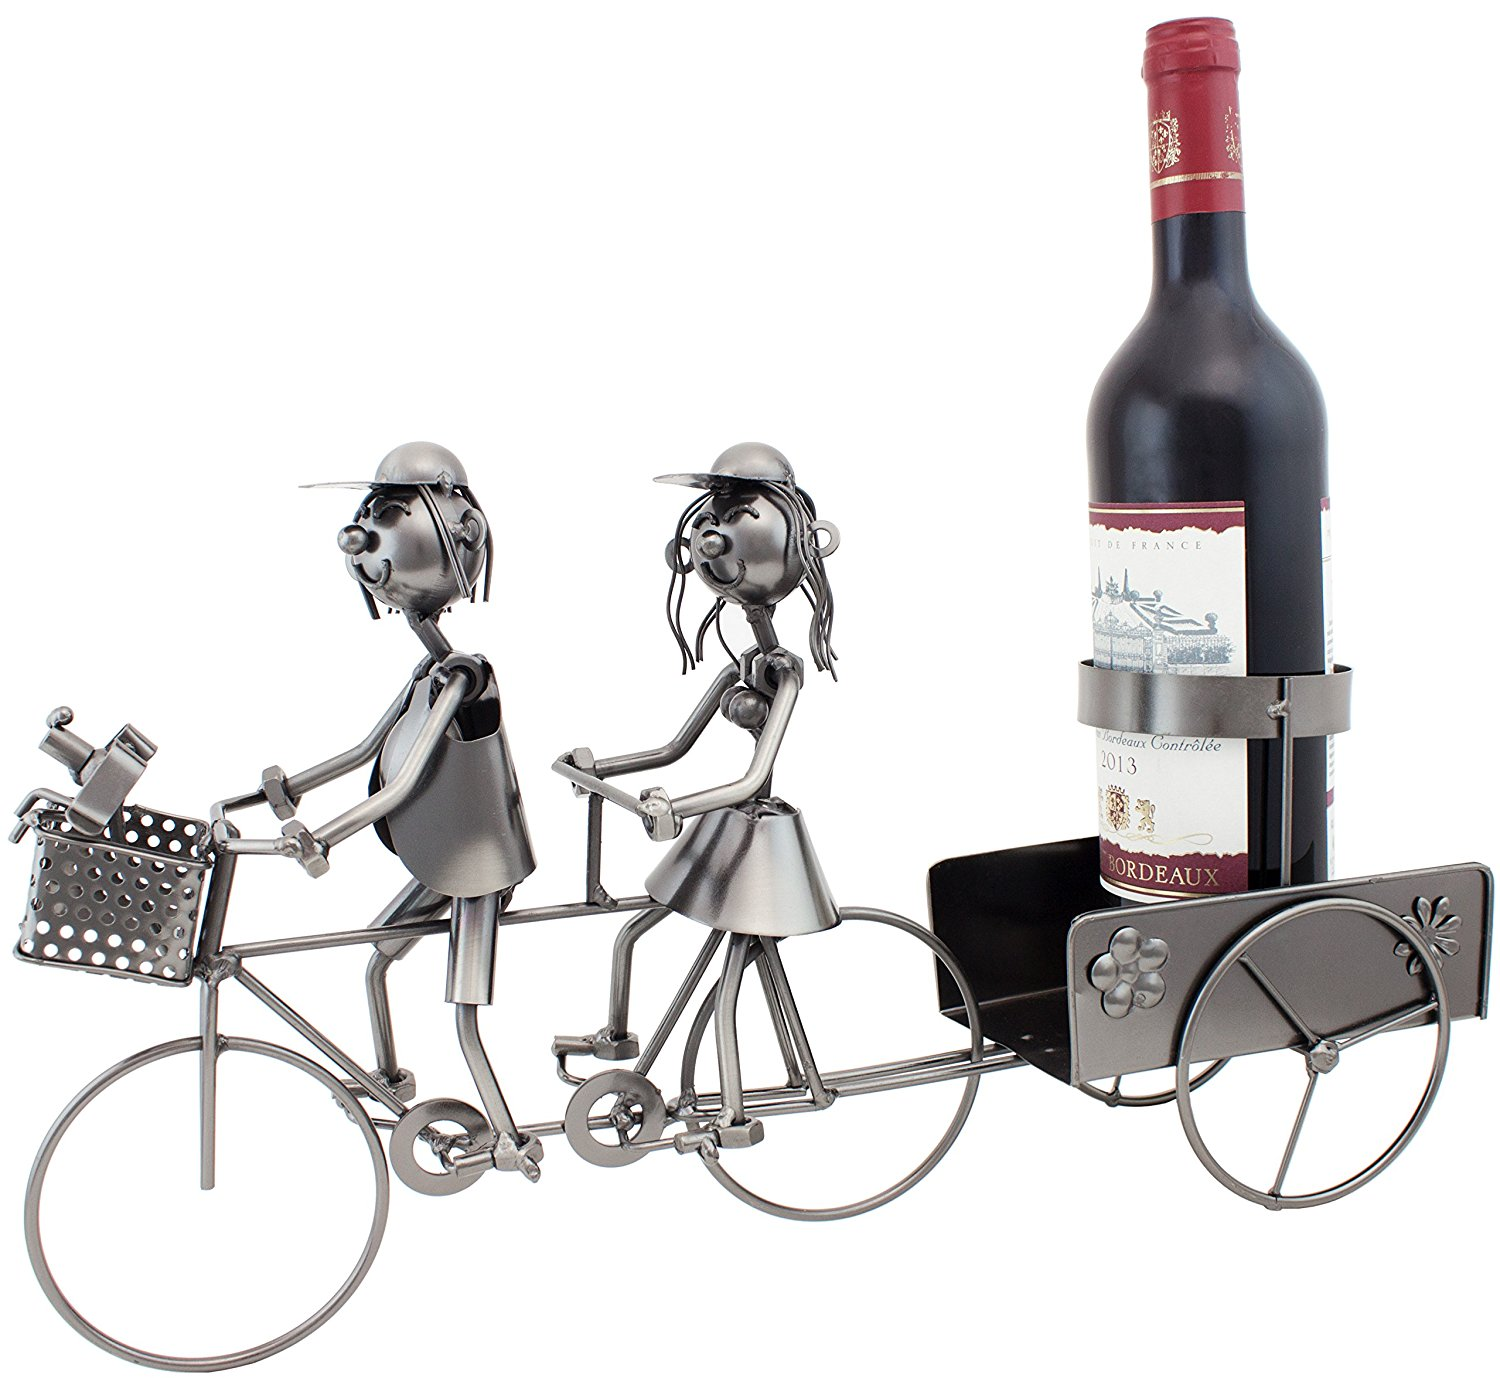 "BRUBAKER Bottle Holder ""Couple on Tandem Bicycle"" Metal Sculpture"